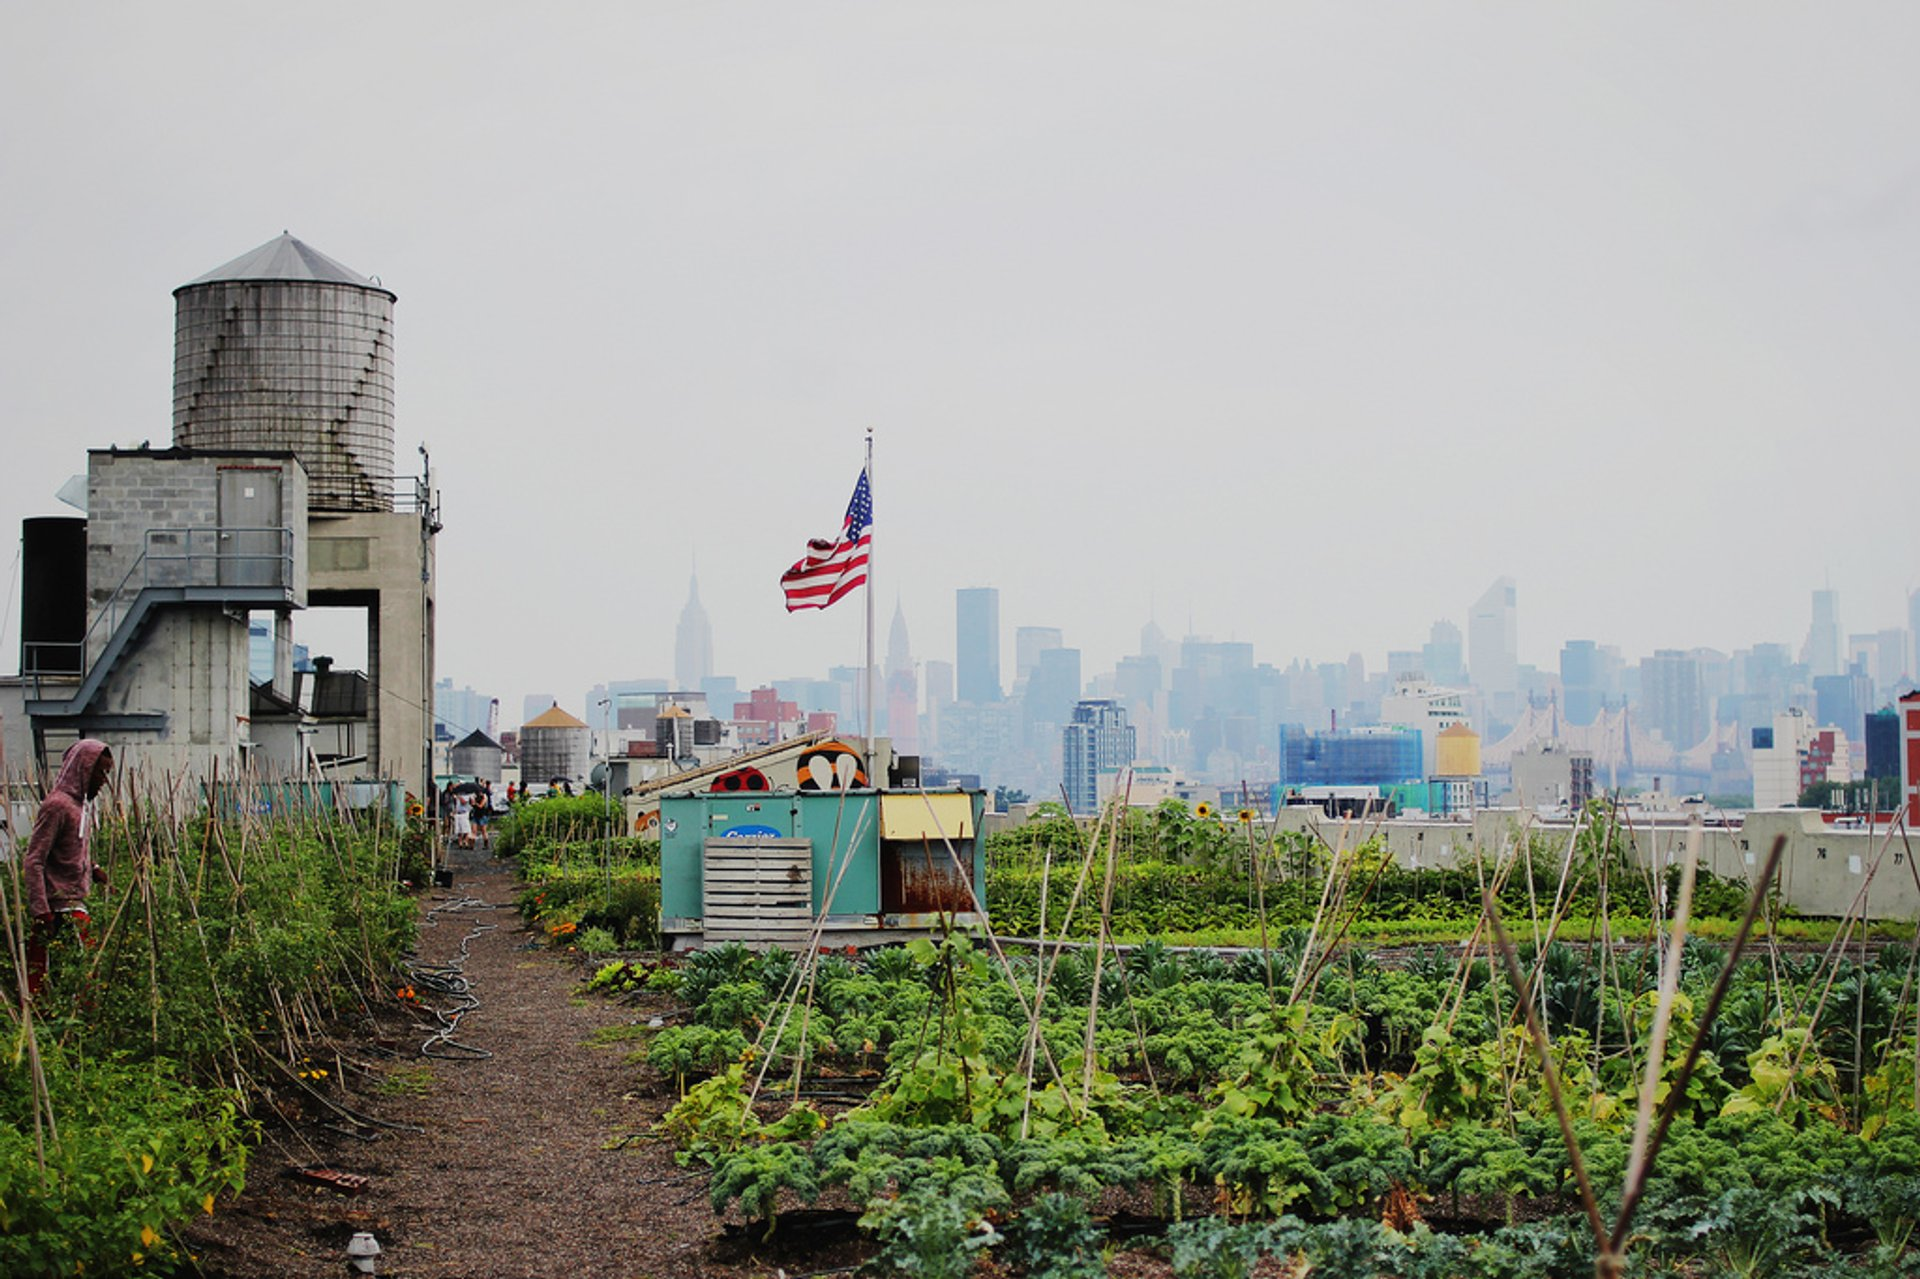 Rooftop Gardens and Farms in New York - Best Season 2020